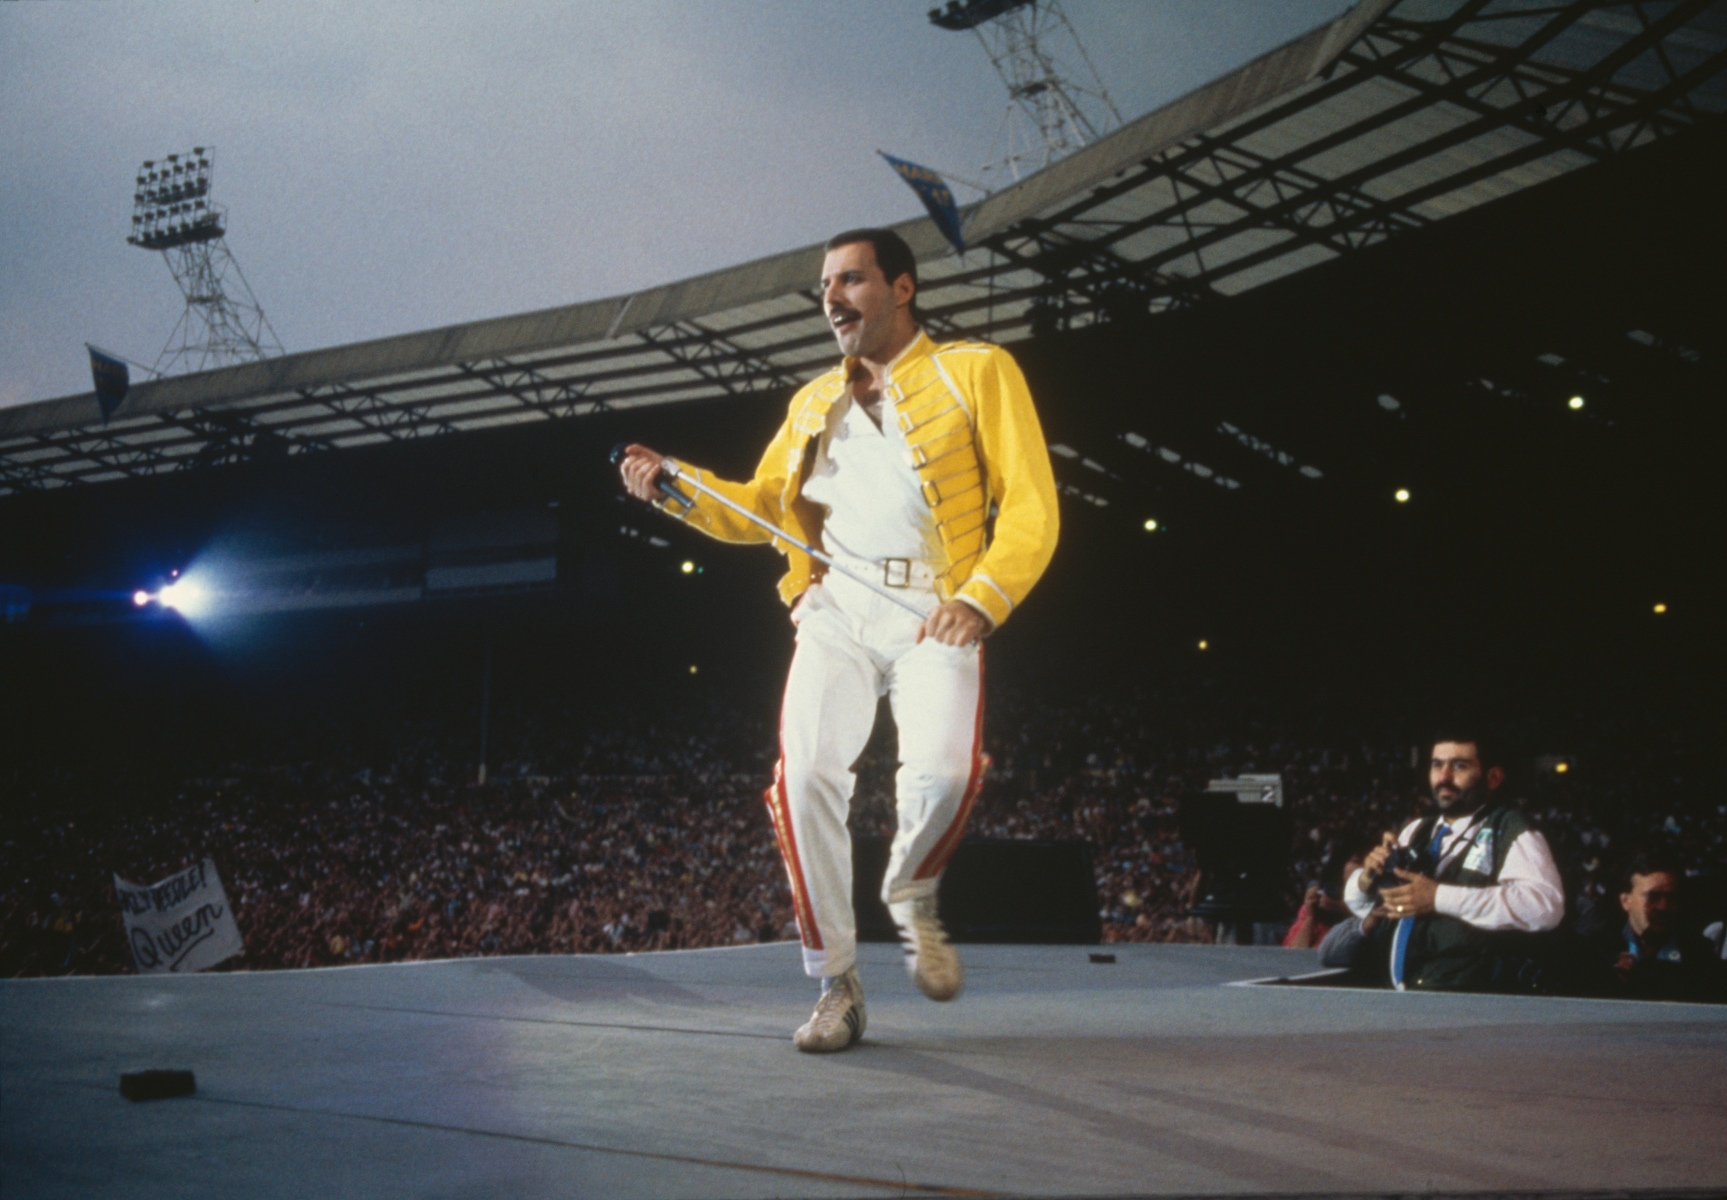 Nine Freddie Mercury Stage Looks Will Still Rock You - InsideHook